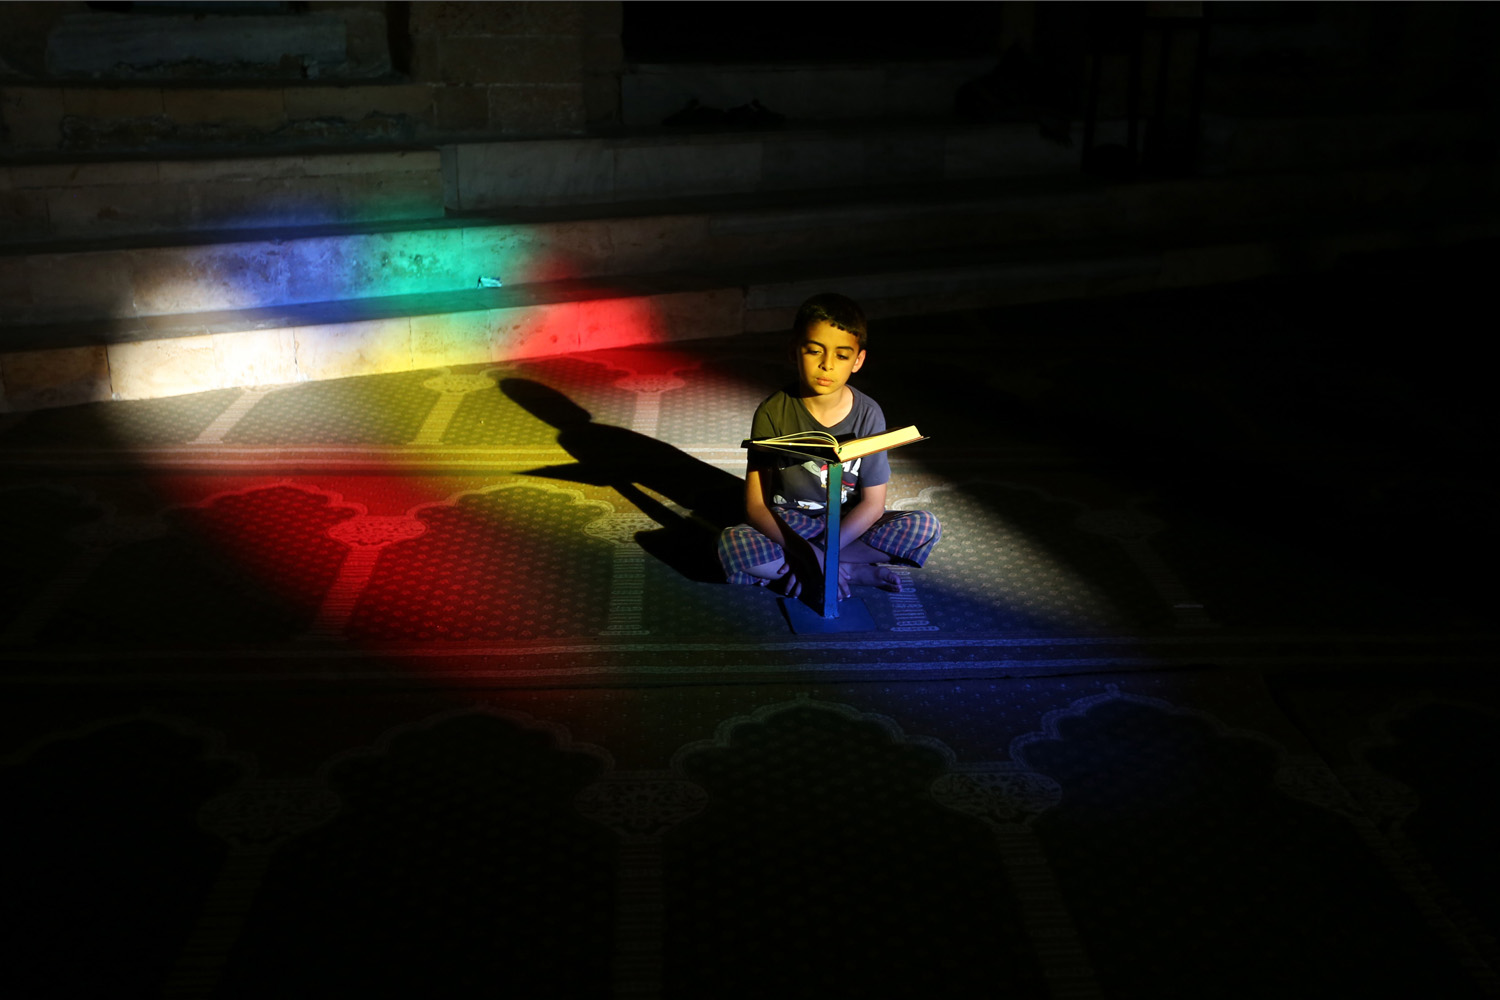 Jun. 29, 2014. A Palestinian boy reads the Quran, Islam's holy book, in the Al-Omari mosque in Gaza City. Muslims throughout the world are celebrating the holy fasting month of Ramadan, refraining from eating, drinking, and smoking from dawn to dusk.